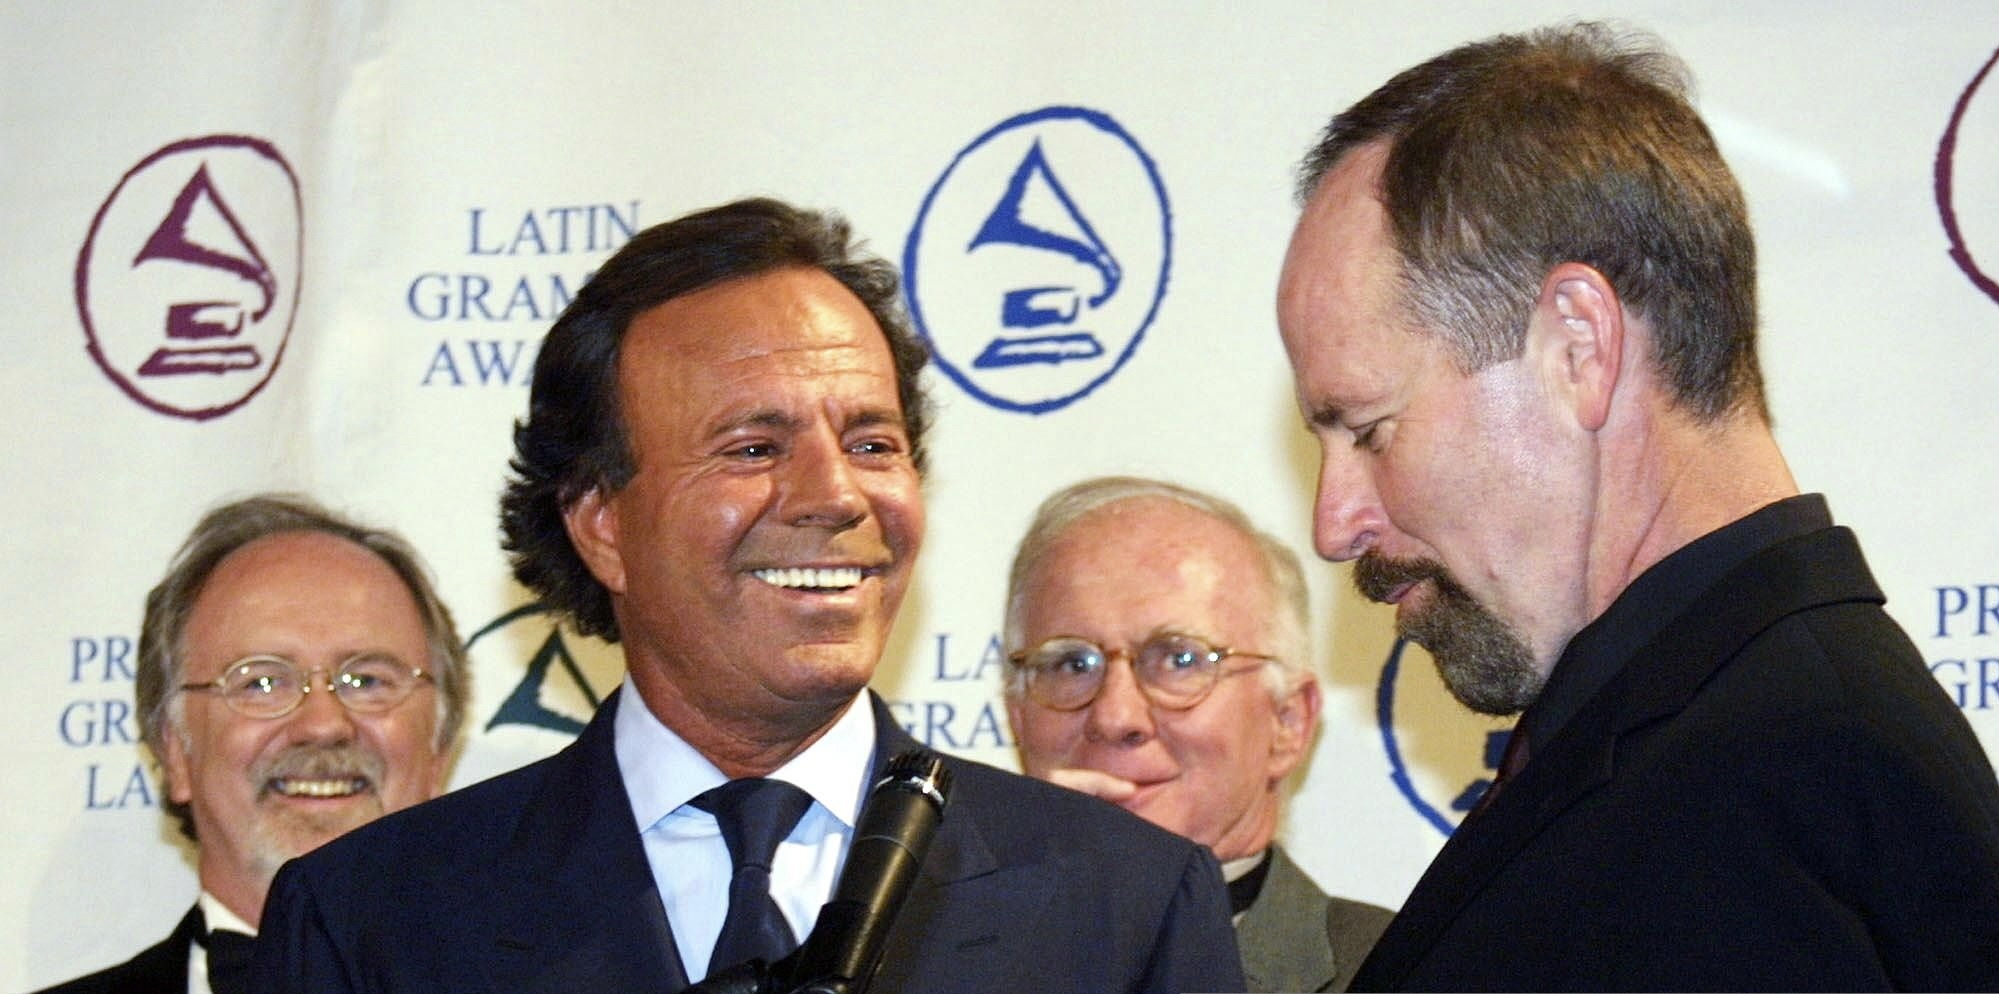 BEVERLY HILLS, UNITED STATES: Spanish singer Julio Iglesias (2nd L) is presented the Latin Academy of Recording Arts and Sciences Person of the Year Award by Acdademy President Michael Greene (R) prior to a gala tribute dinner 10 September, 2001 in Beverly Hills, CA. The Latin Grammys will be presented 11 September. AFP PHOTO/LEE CELANO (Photo credit should read LEE CELANO/AFP via Getty Images)